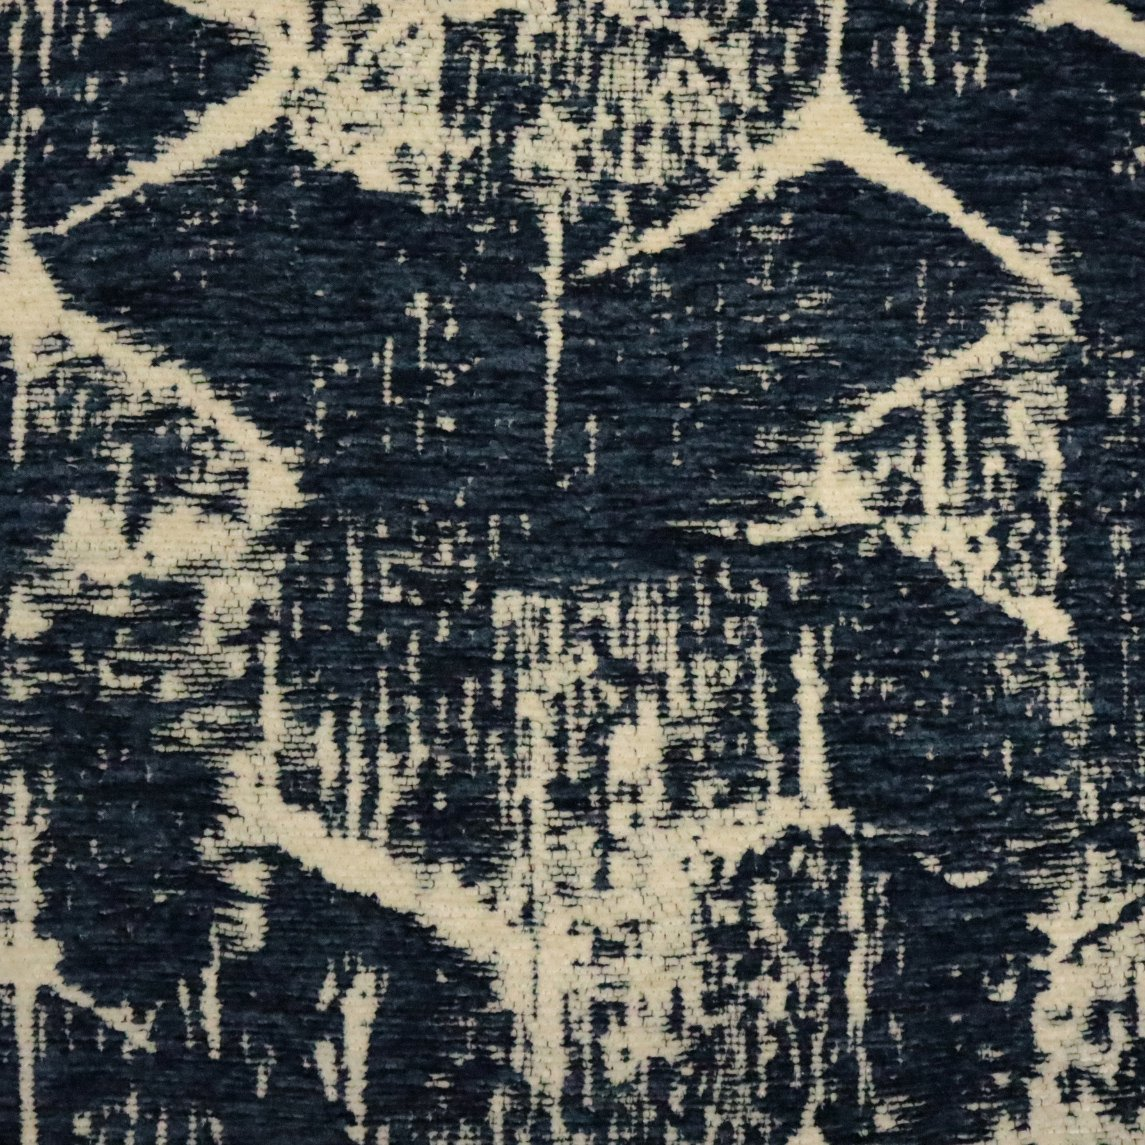 with a Modern Art Text Uniquely Designed Chenille Upholstery Fabric BLACK